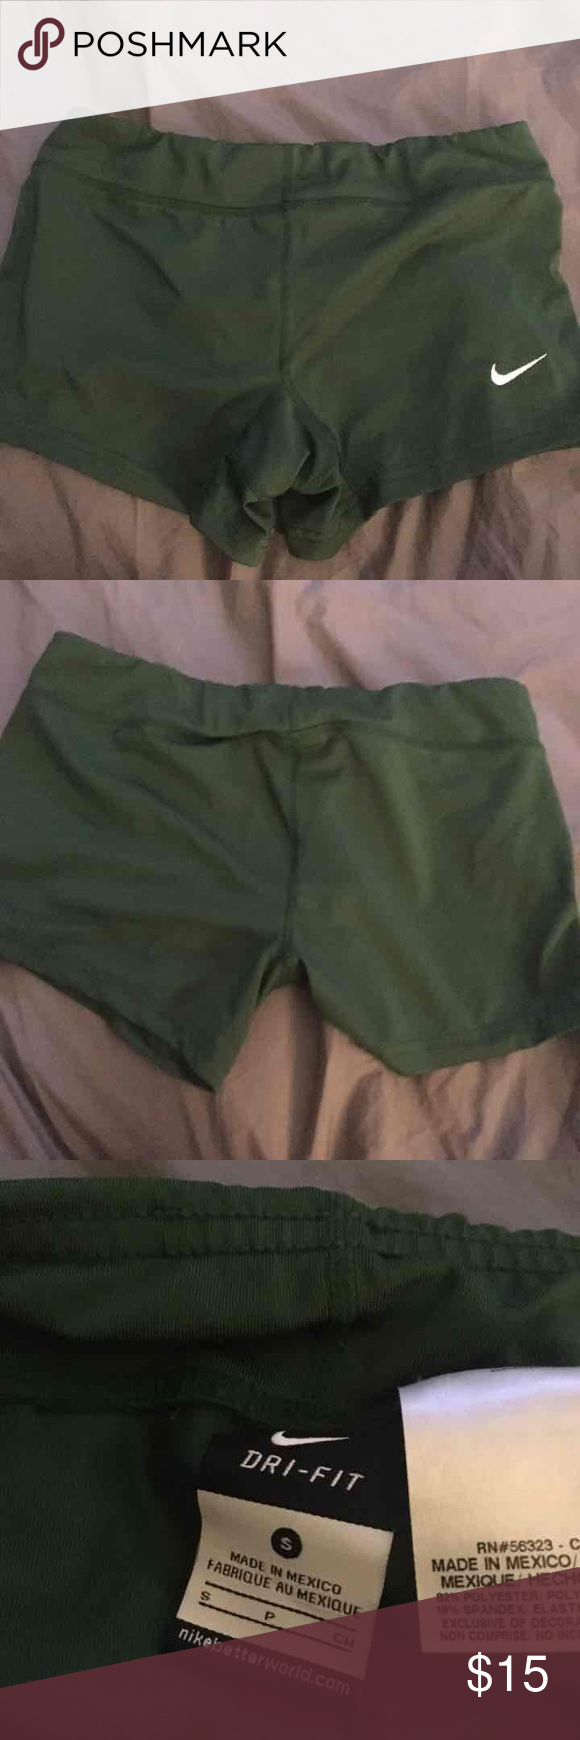 Forrest Green Nike Spandex Size Small. Worn once. Nike Other